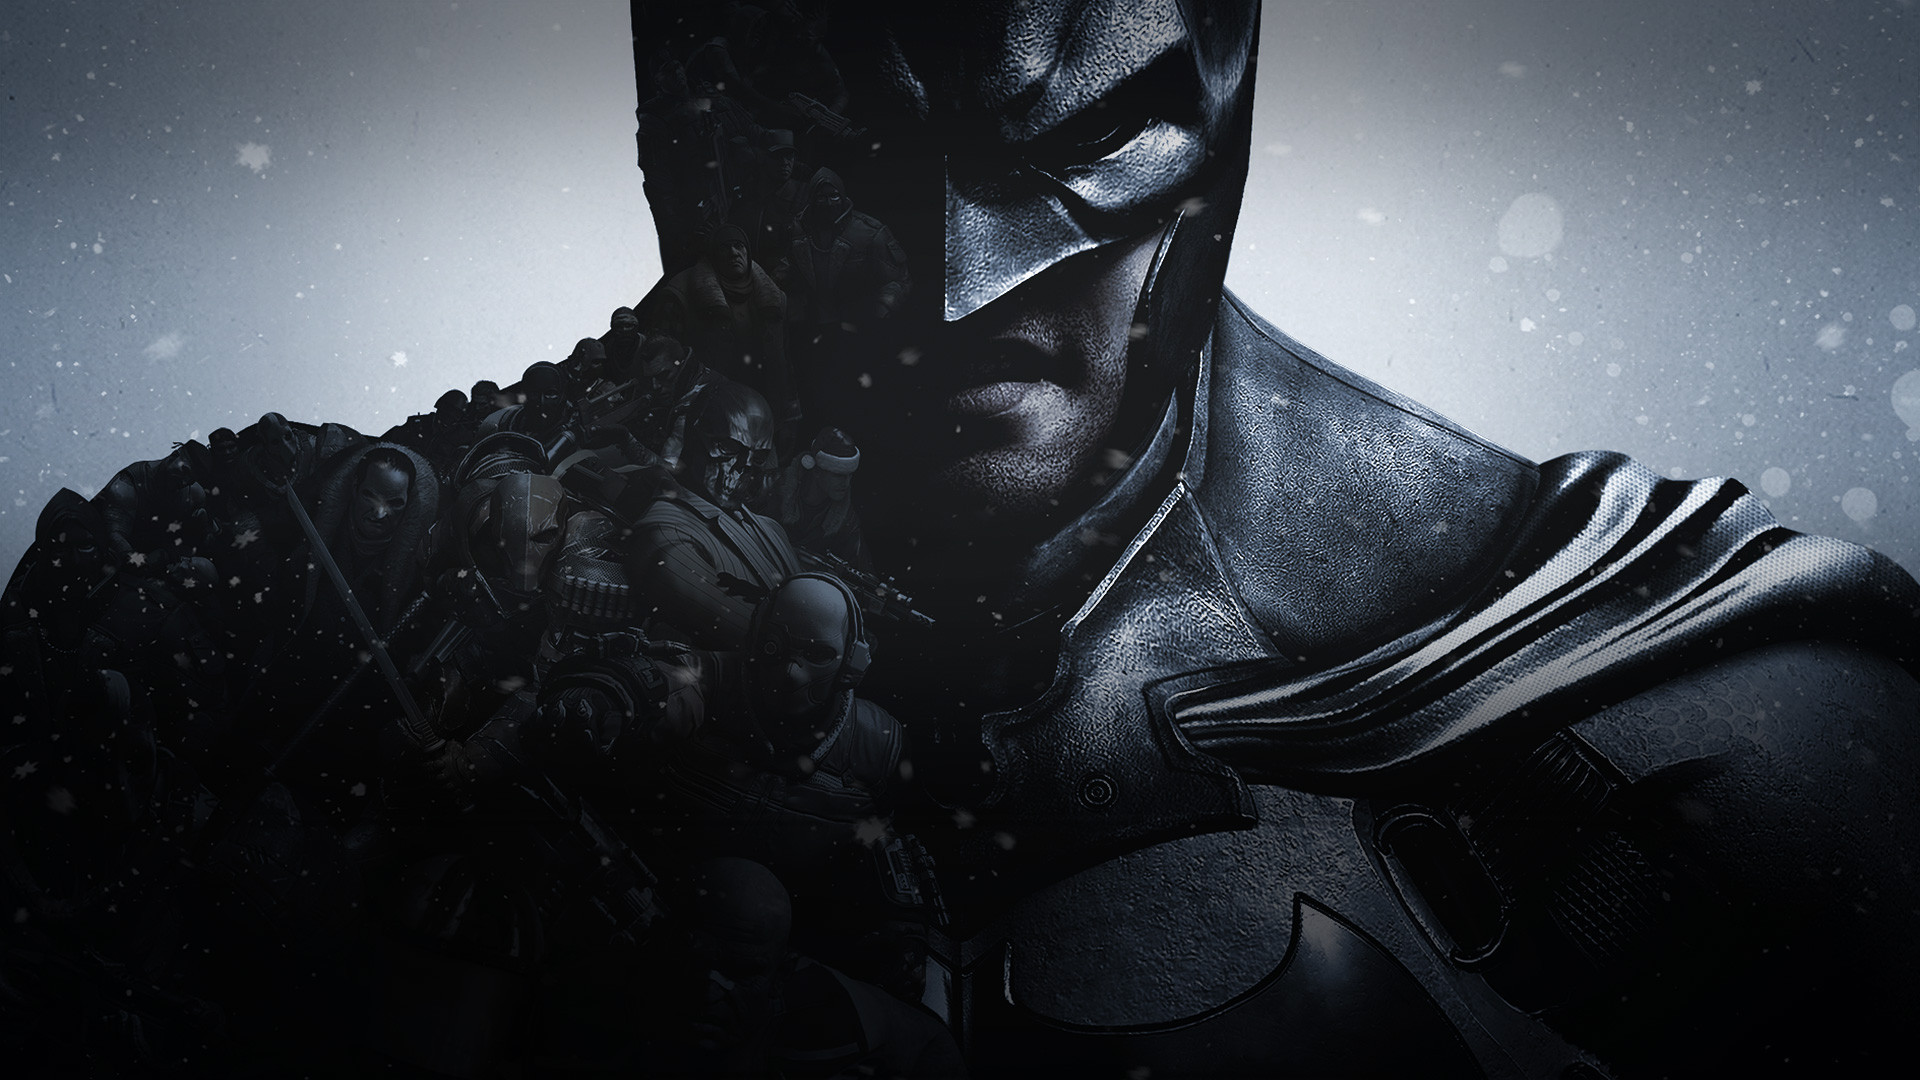 1920x1080 83 Batman V Superman Dawn Of Justice HD Wallpapers